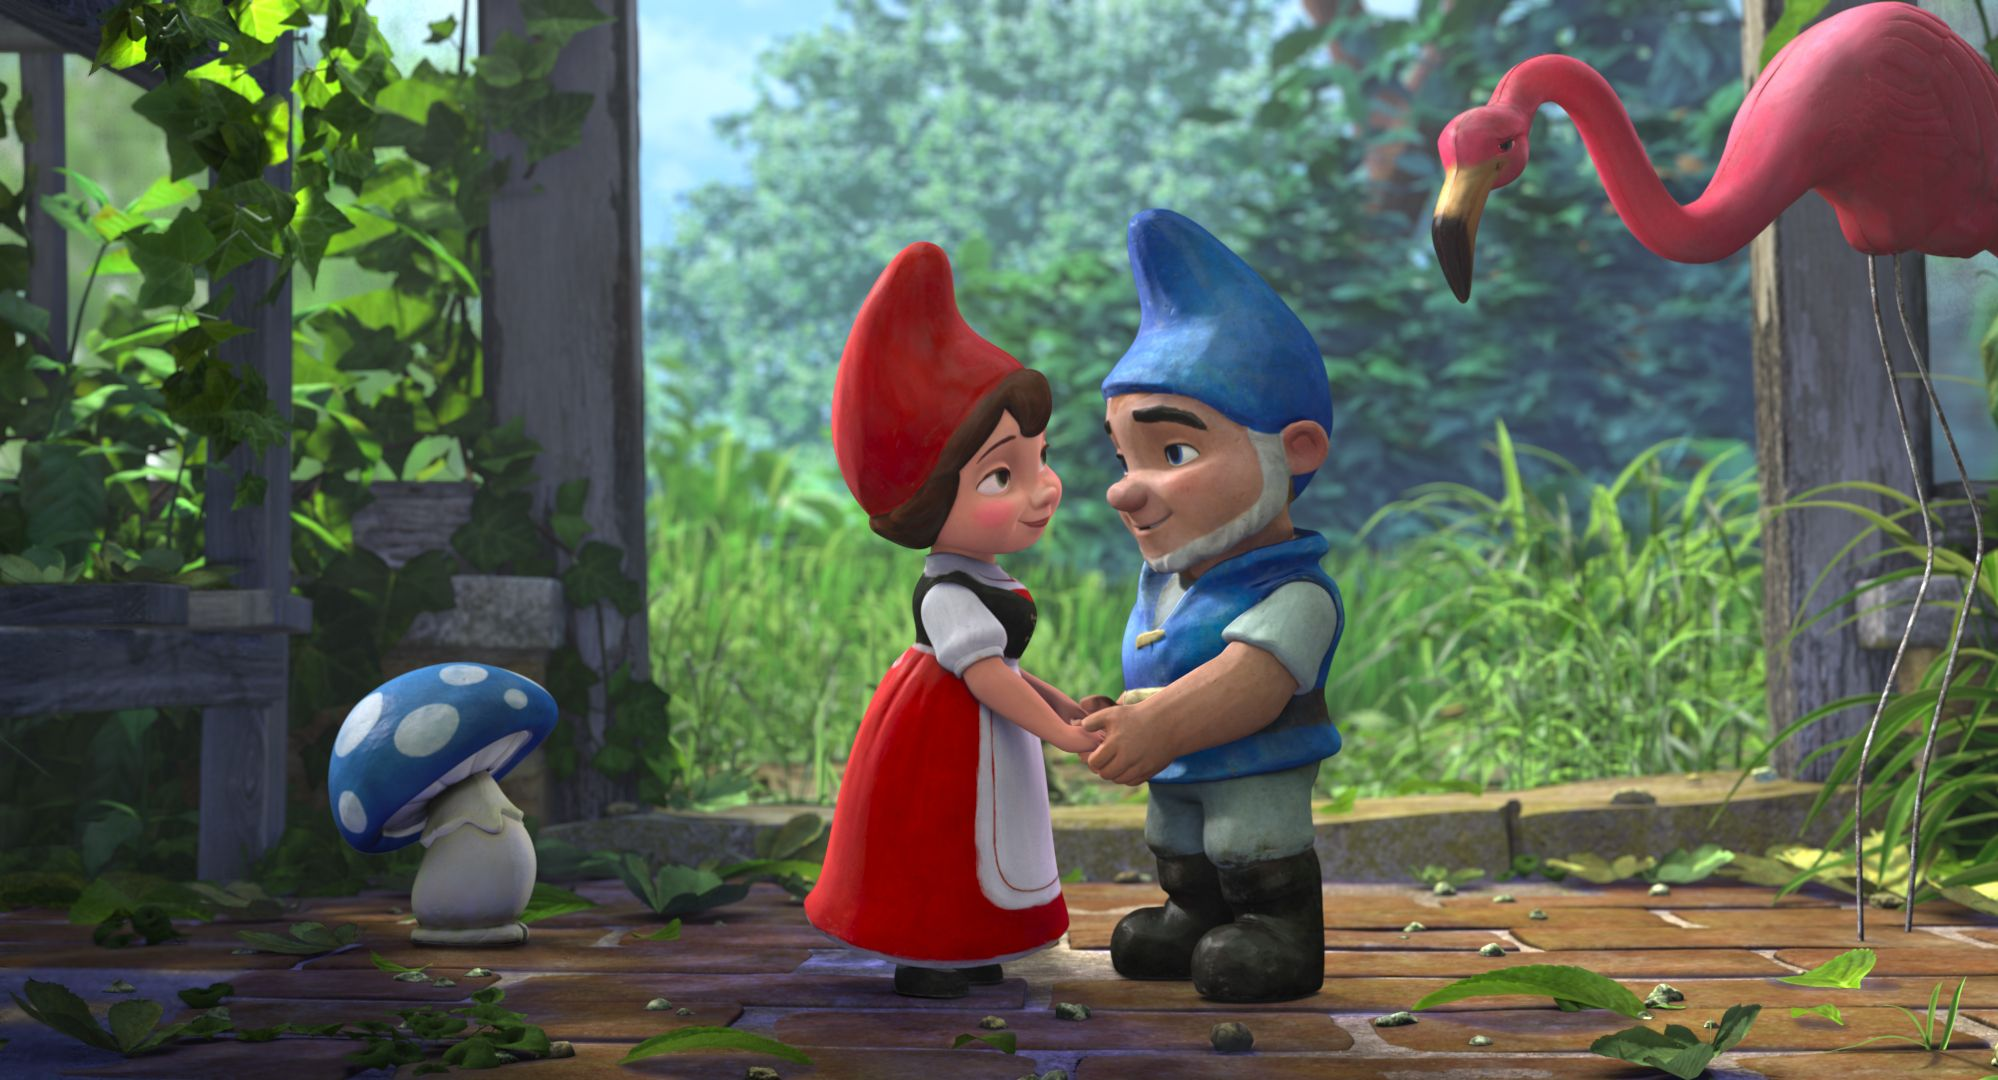 An image from Gnomeo & Juliet